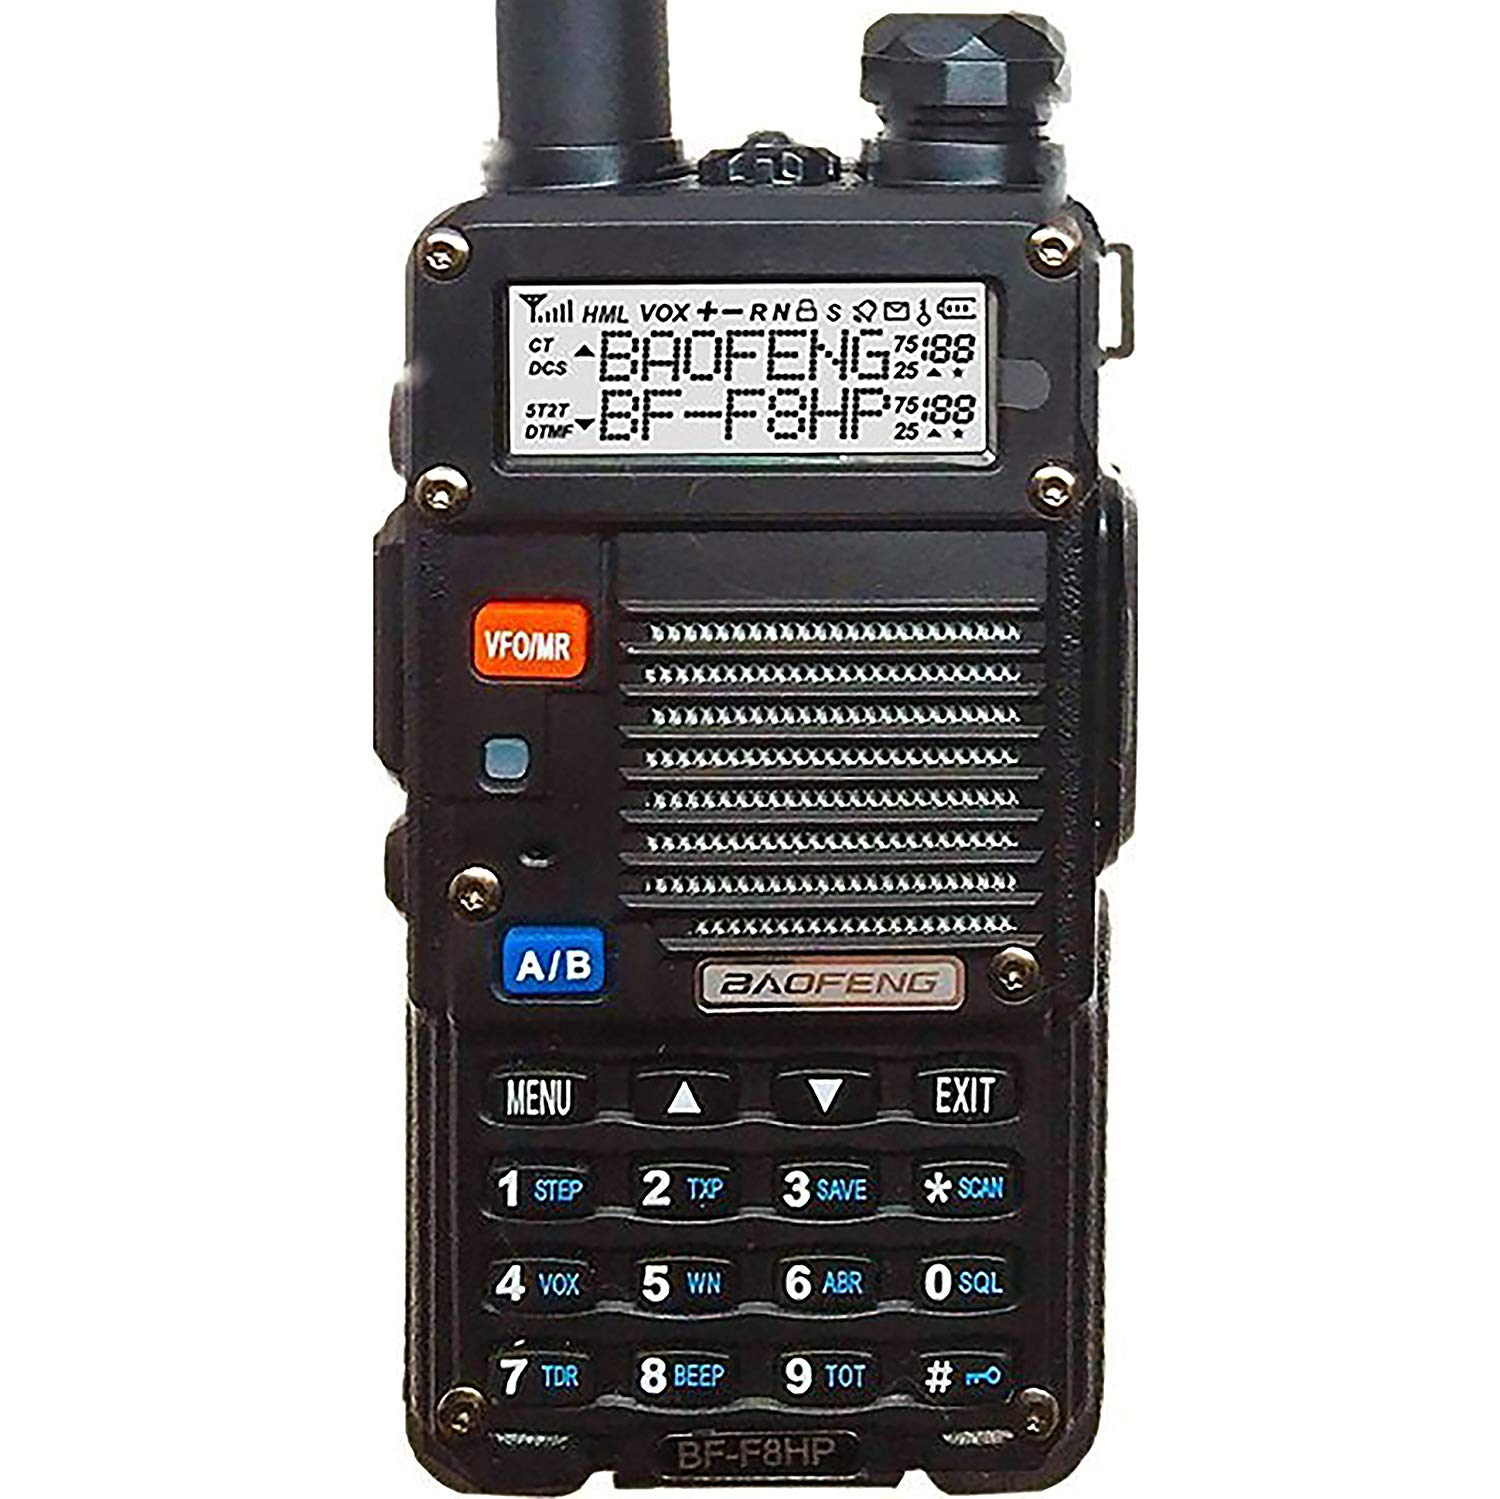 BaoFeng BF-F8HP 8-Watt Dual Band Two-Way Radio